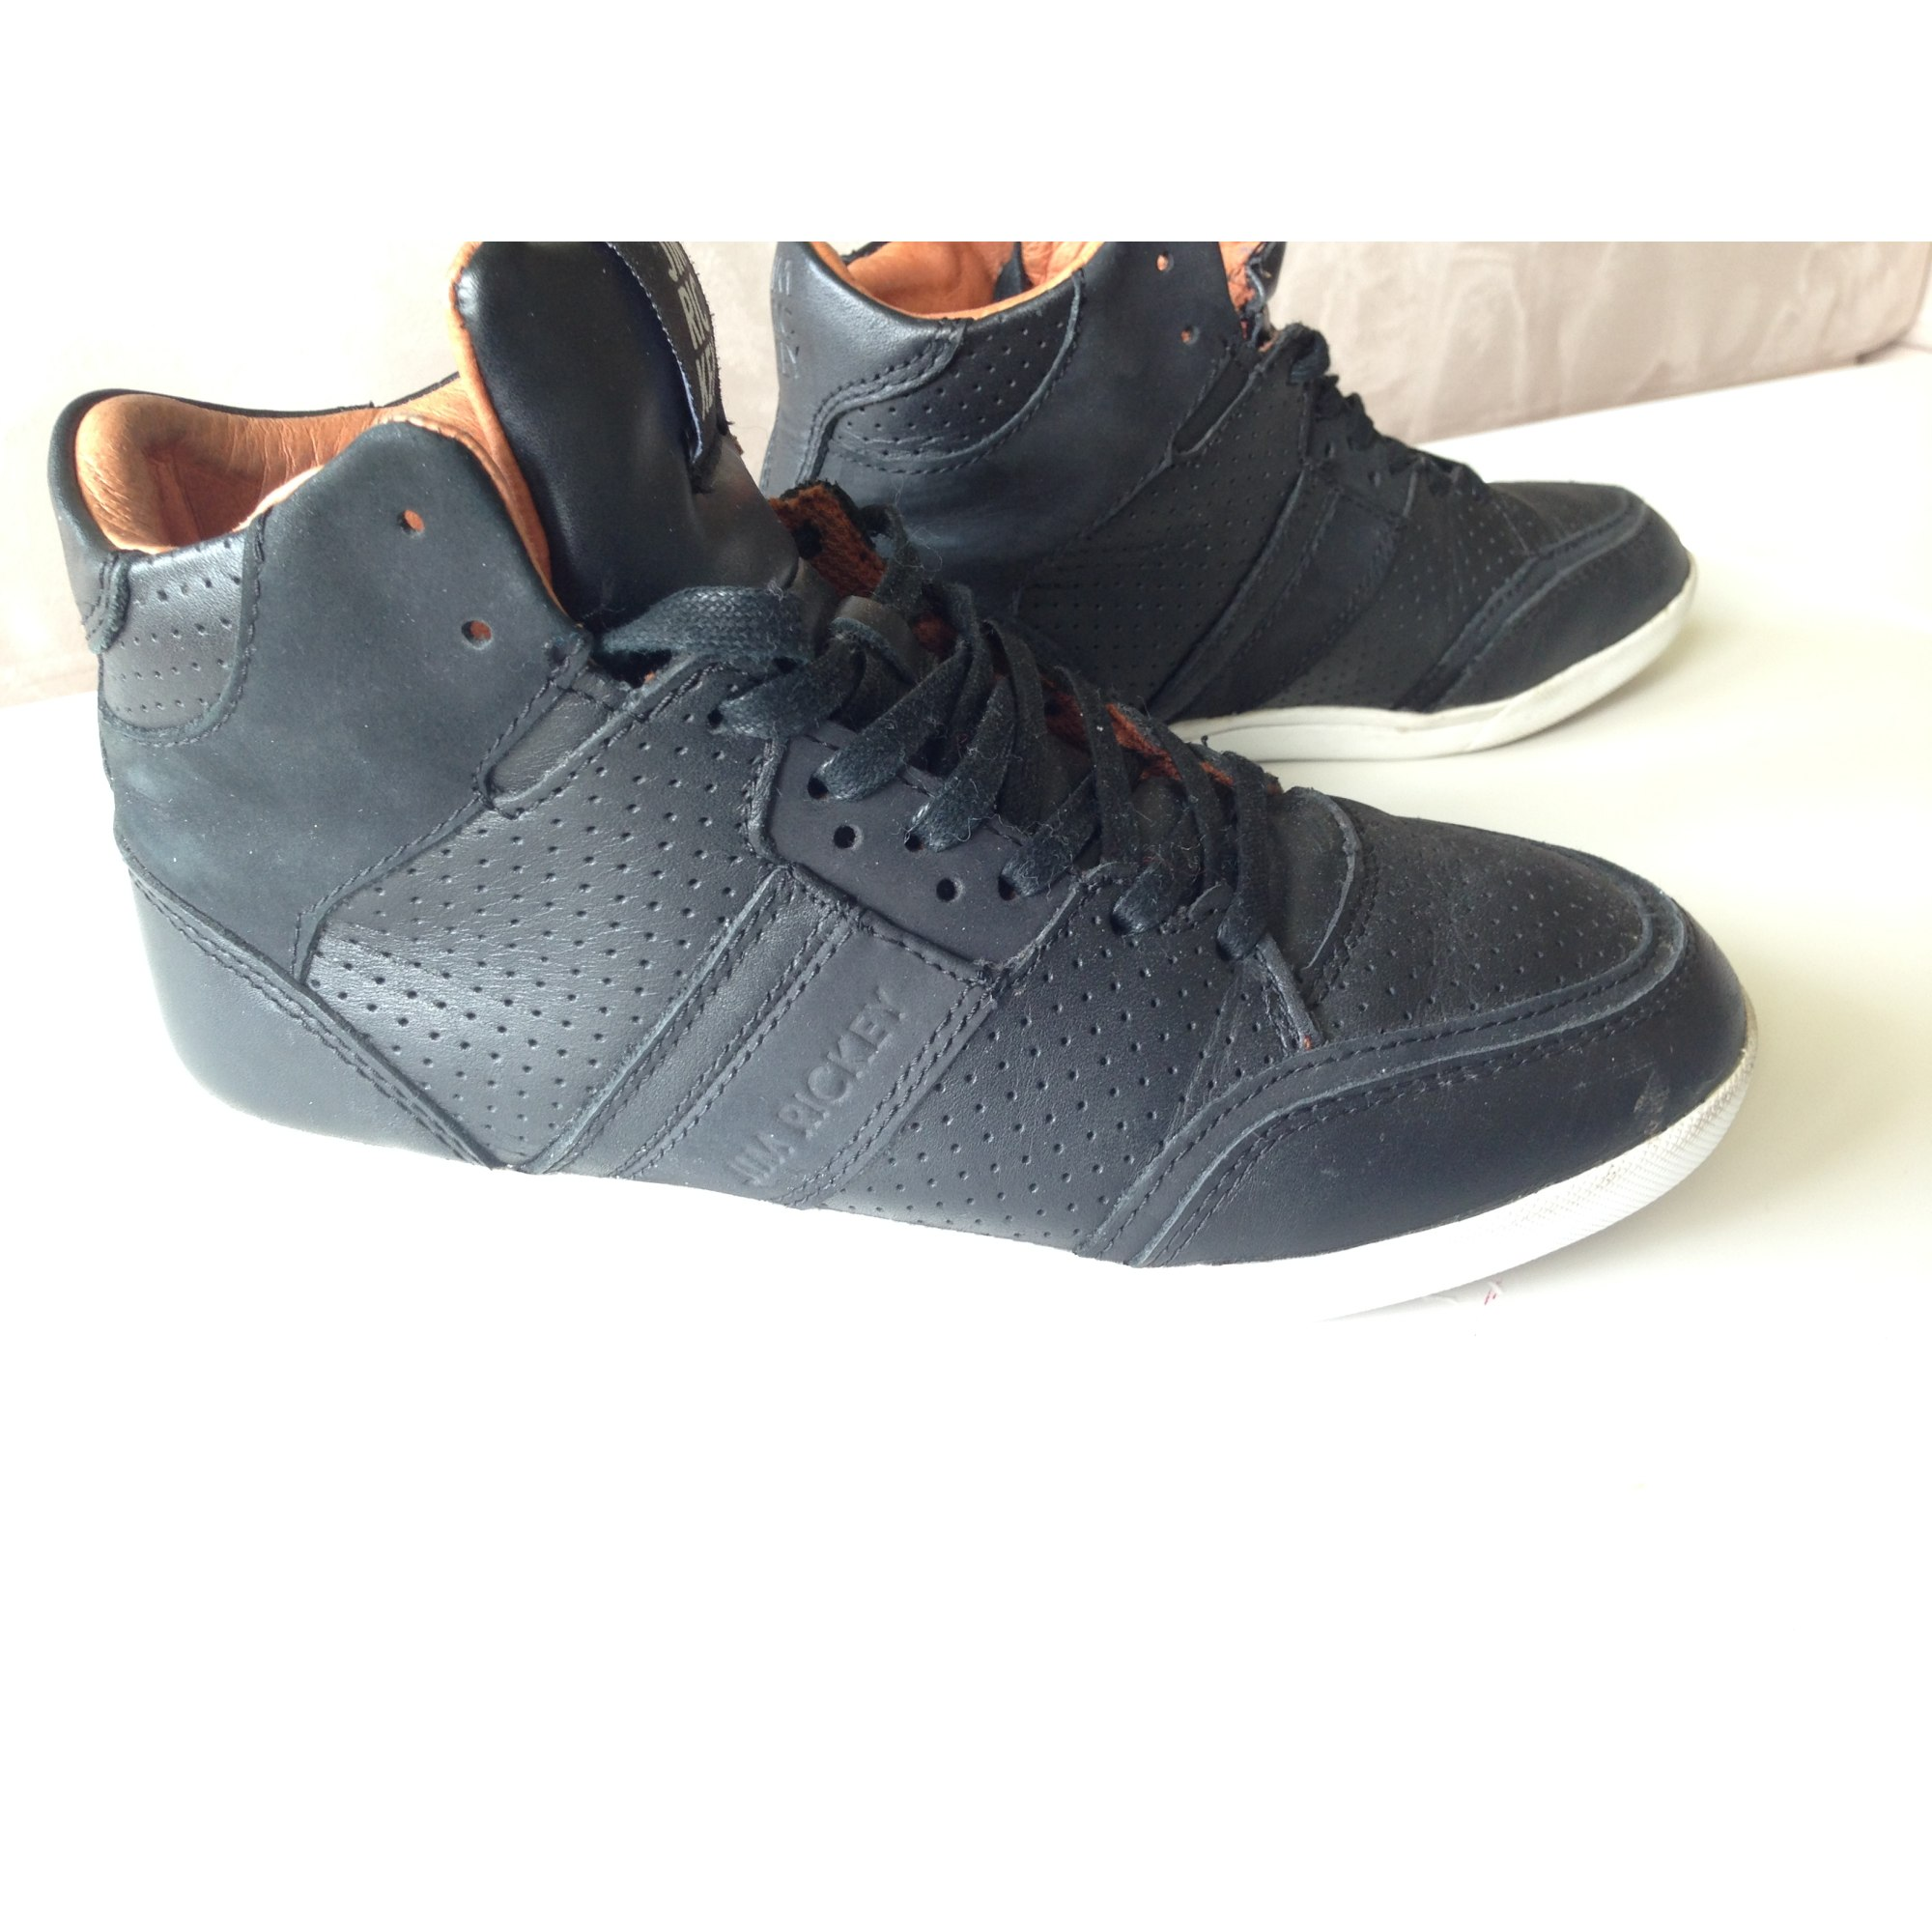 Classe Classe Sport Homme Sport Chaussure Homme Chaussure eordCxB